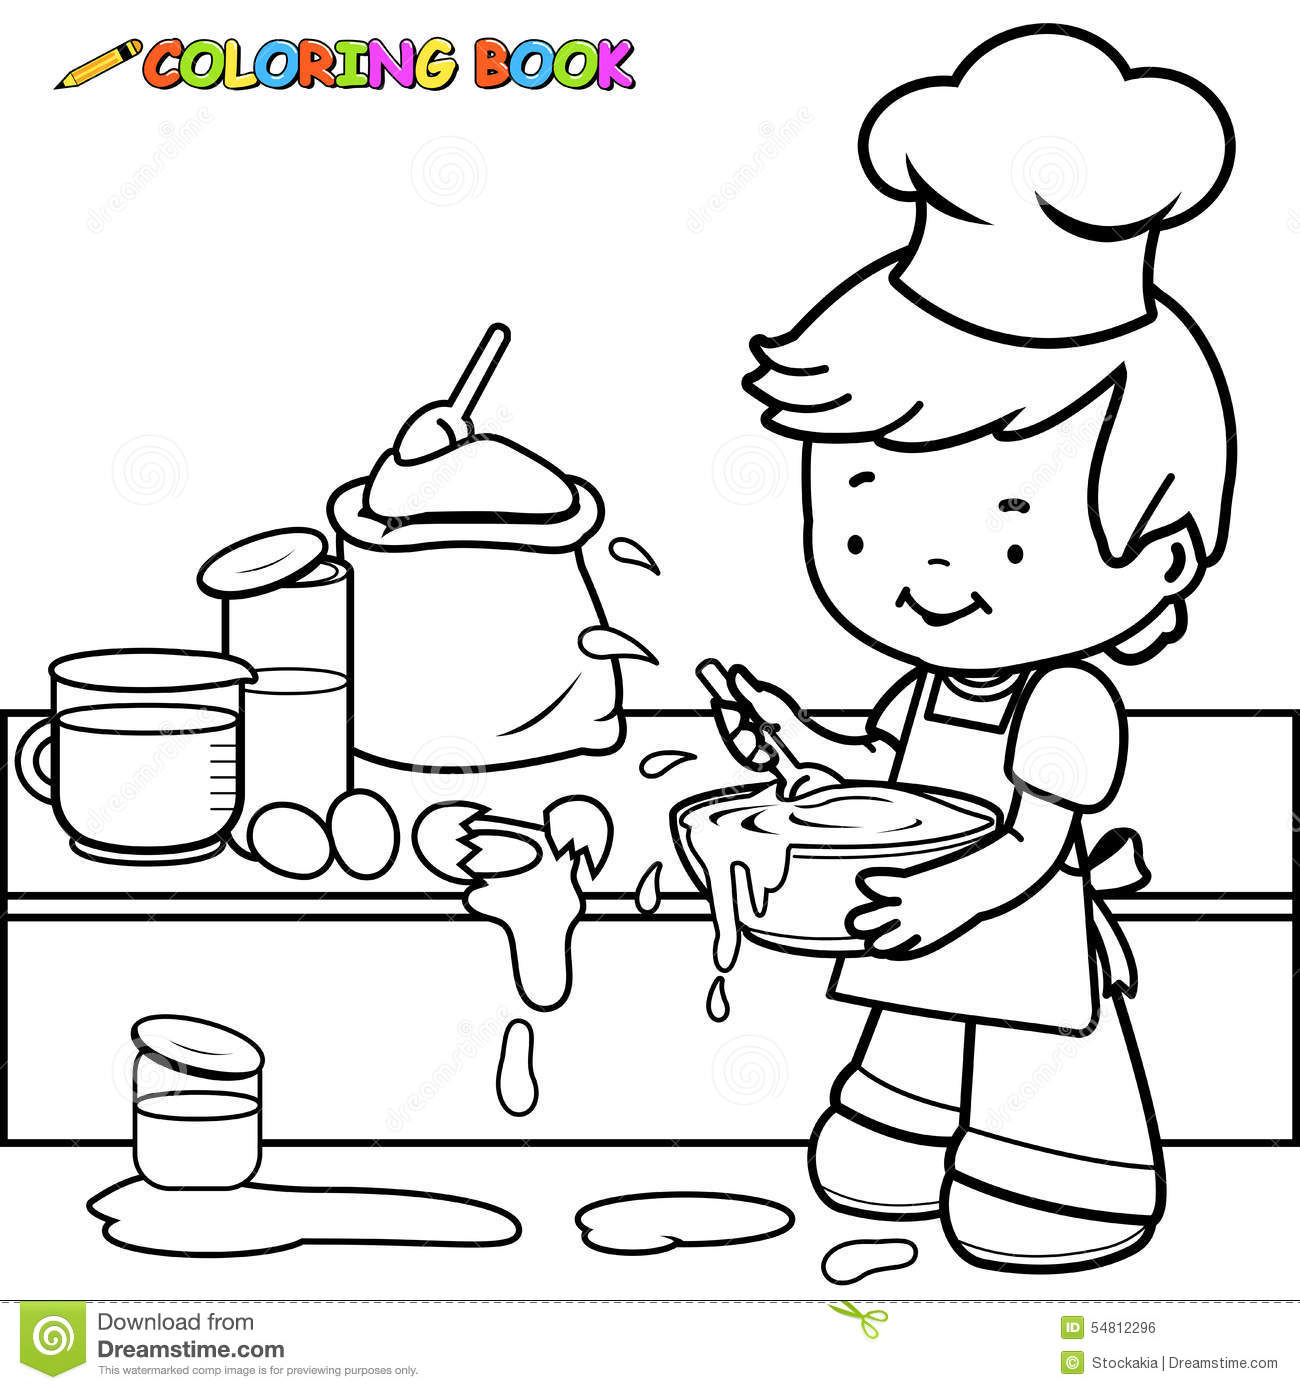 Bread Clipart Black And White 3 as well Stock Illustration Rolling Pin Cartoon further Stock Illustration Boy Cooking Making Mess Coloring Page Vector Illustration Black White Outline Image Little Kitchen Image54812296 together with Donut Donuts Bread Confectionery 1139832 likewise Stock Illustration Kids Cartoon Play Surfing Surfboard Over Big Wave Illustration Image54299046. on baking cartoon